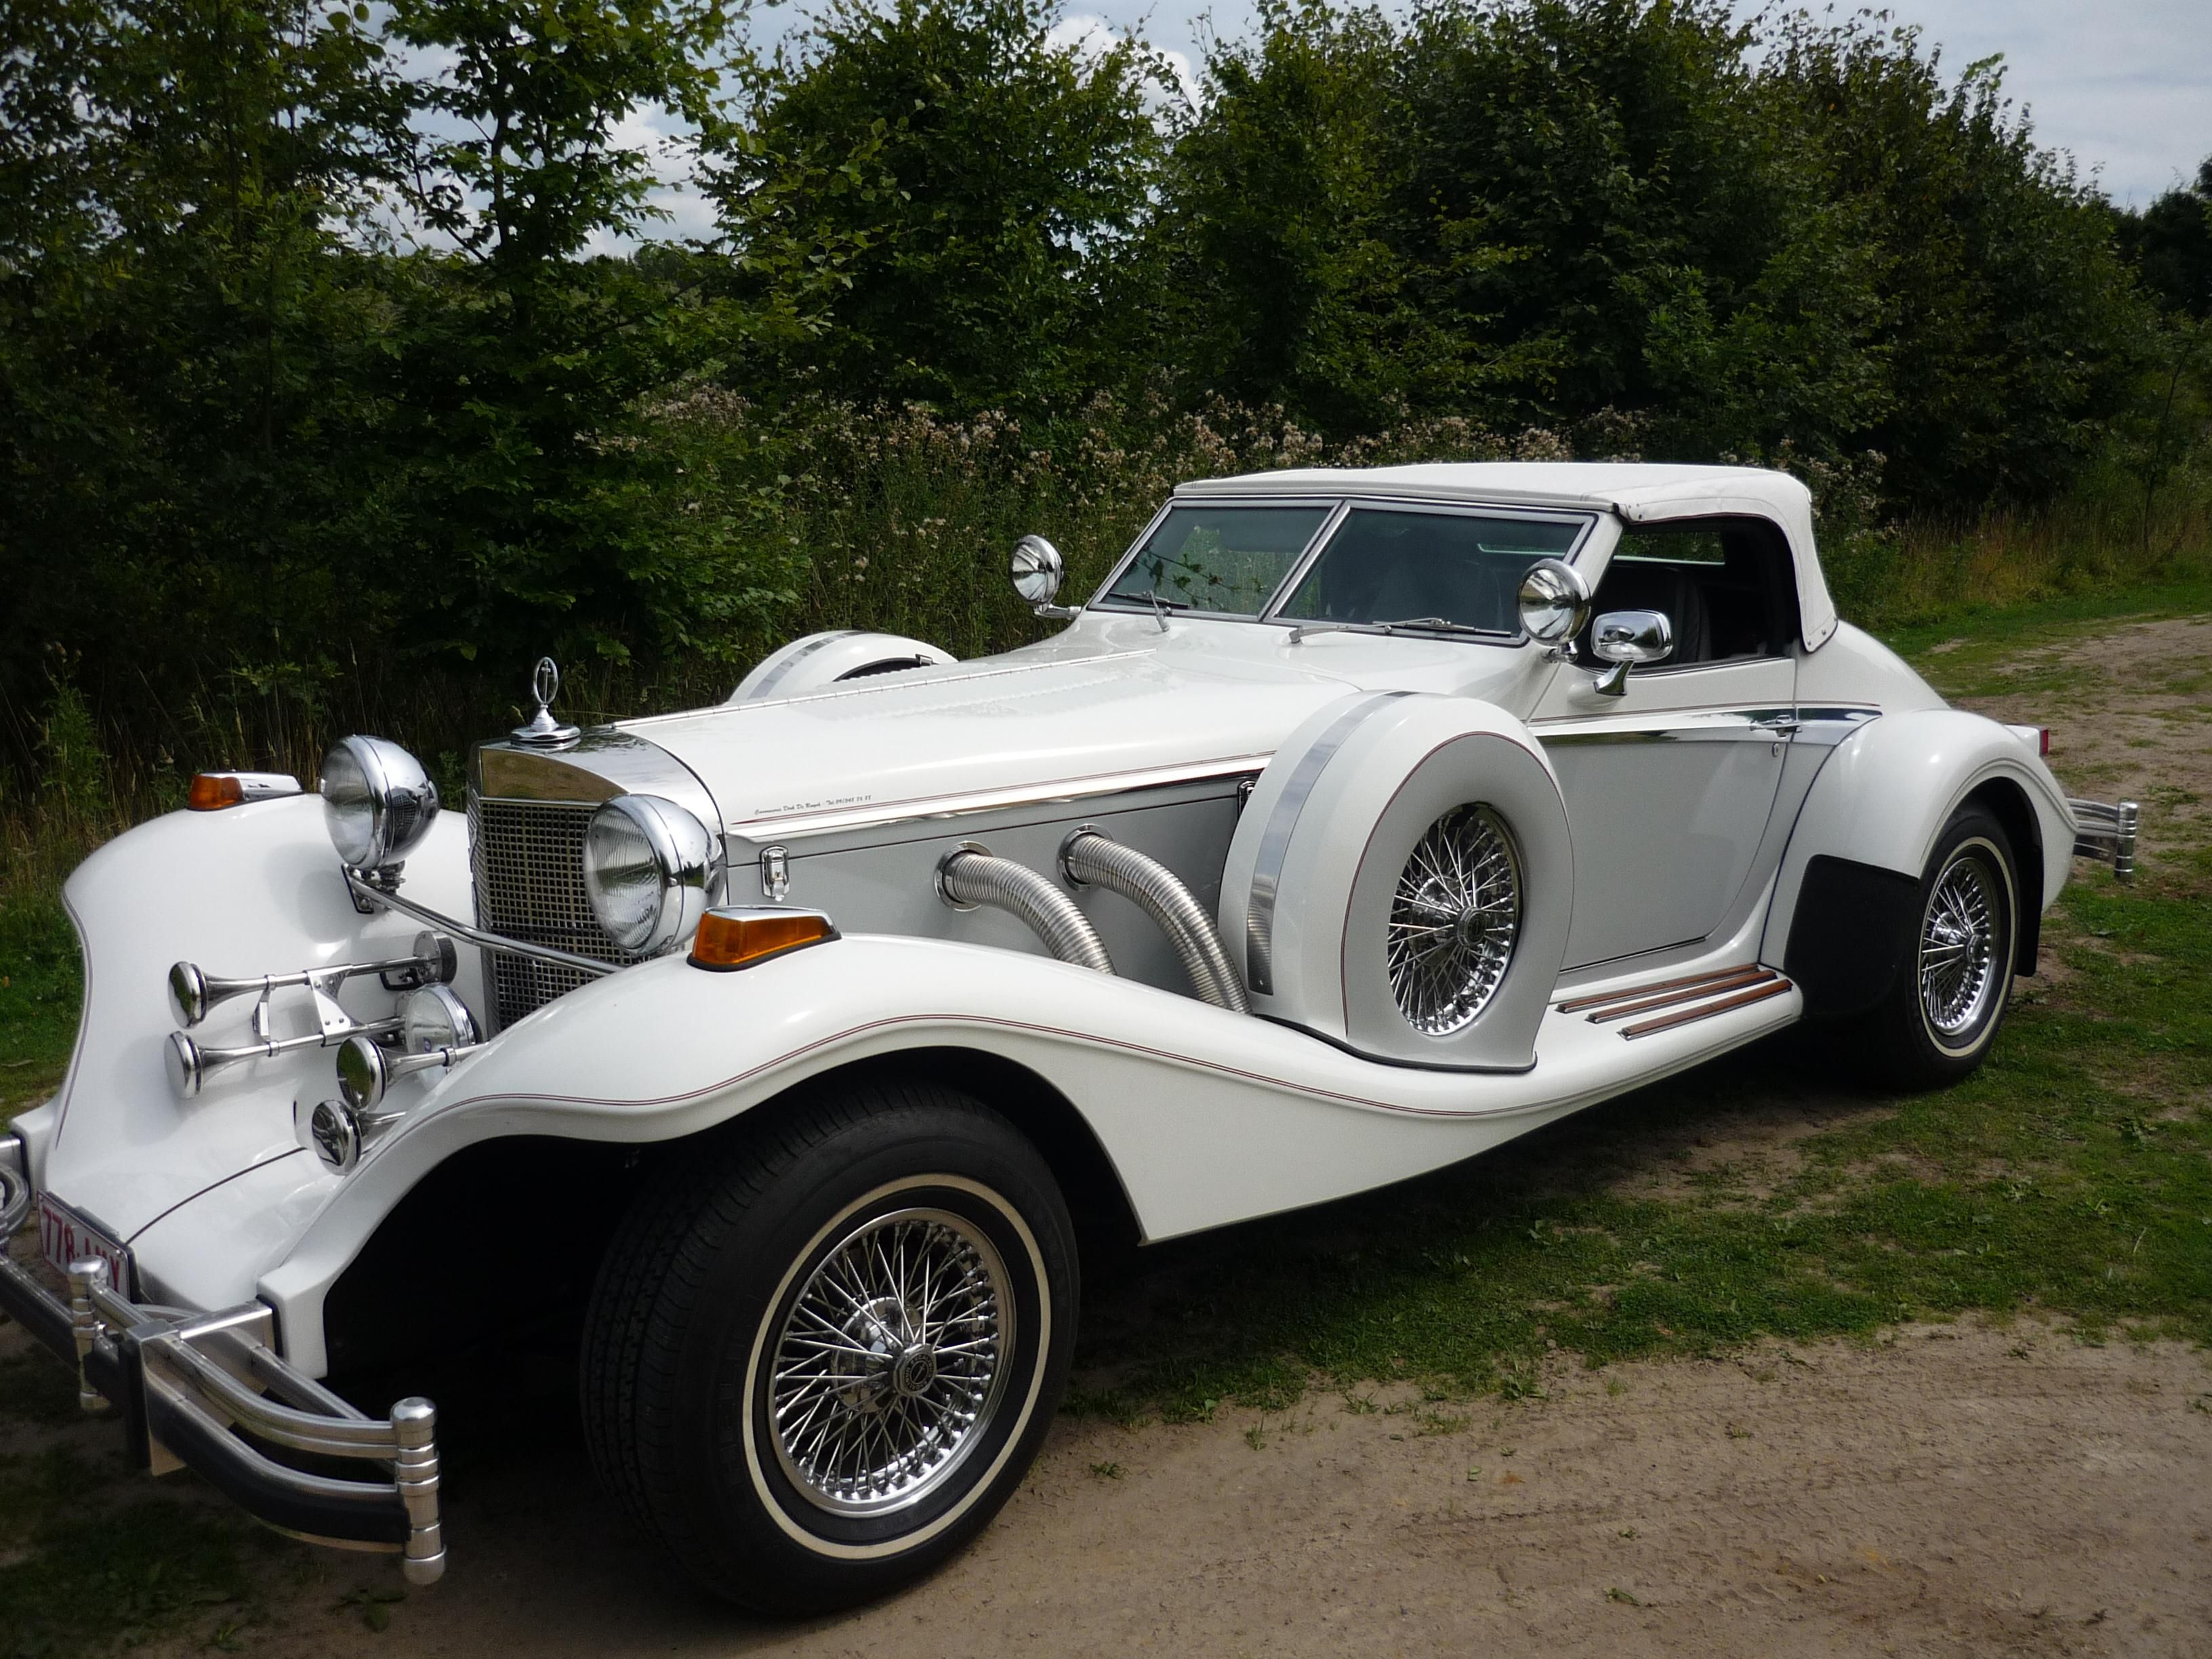 excalibur car | low mileage auto 1982 excalibur roadster clean car ...